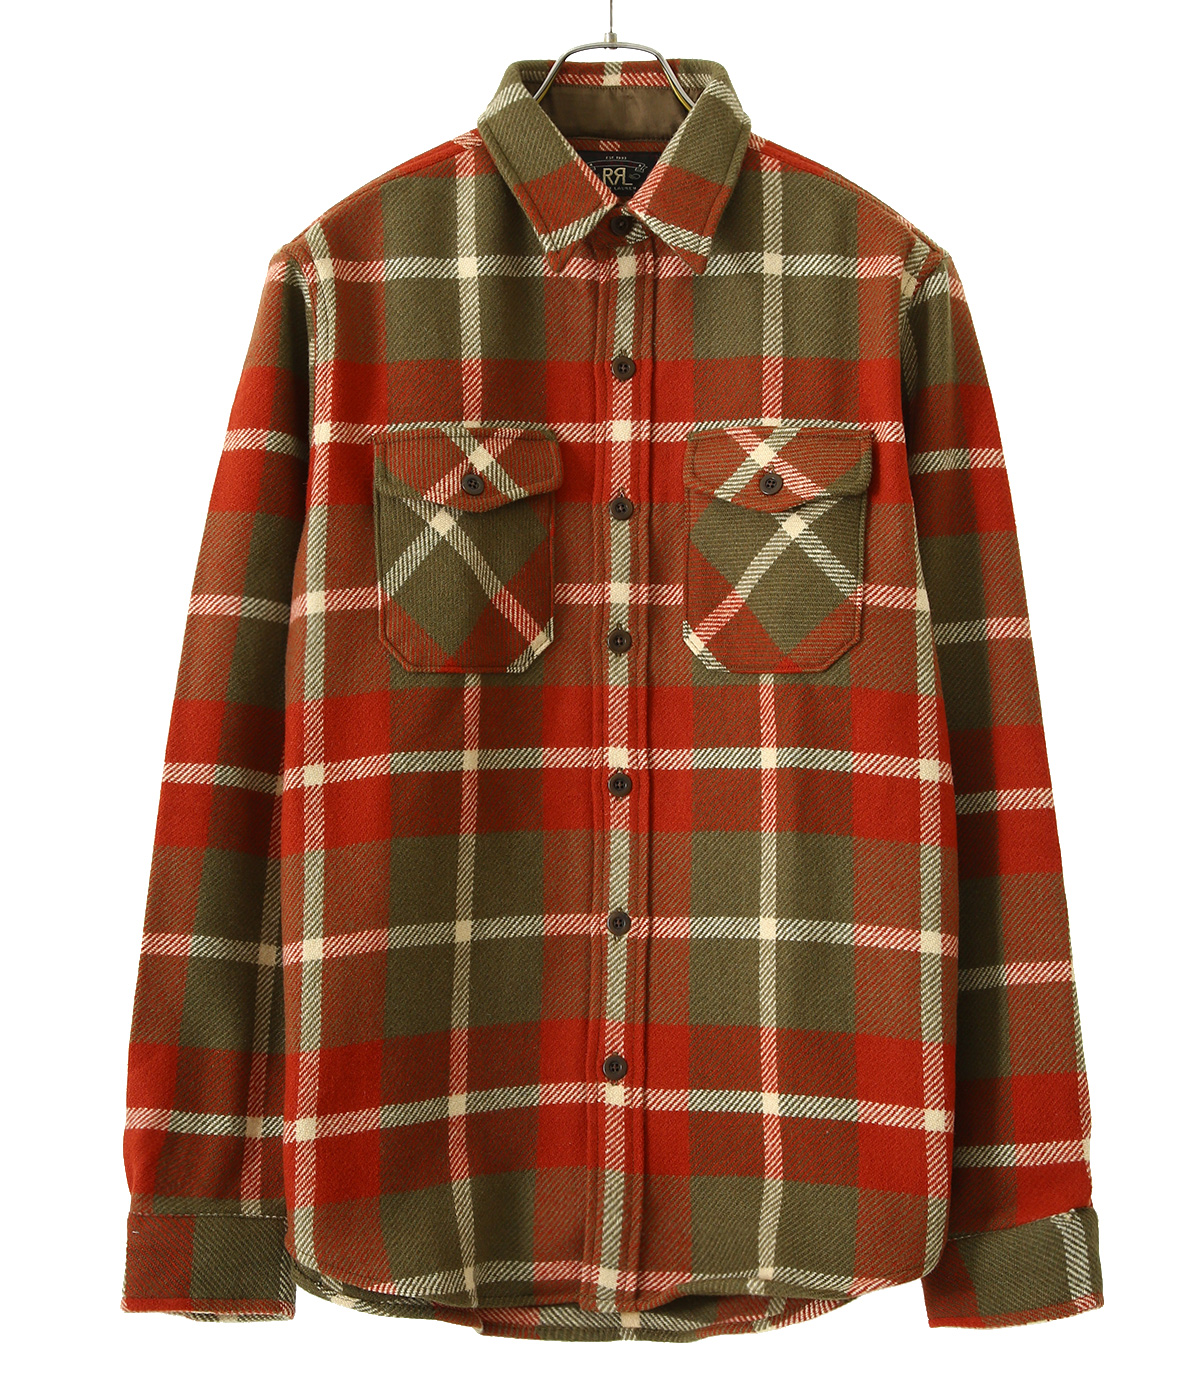 MELTON OS-LONG SLEEVE-SPORT SHIRT WOOL PLAID / SUEDE